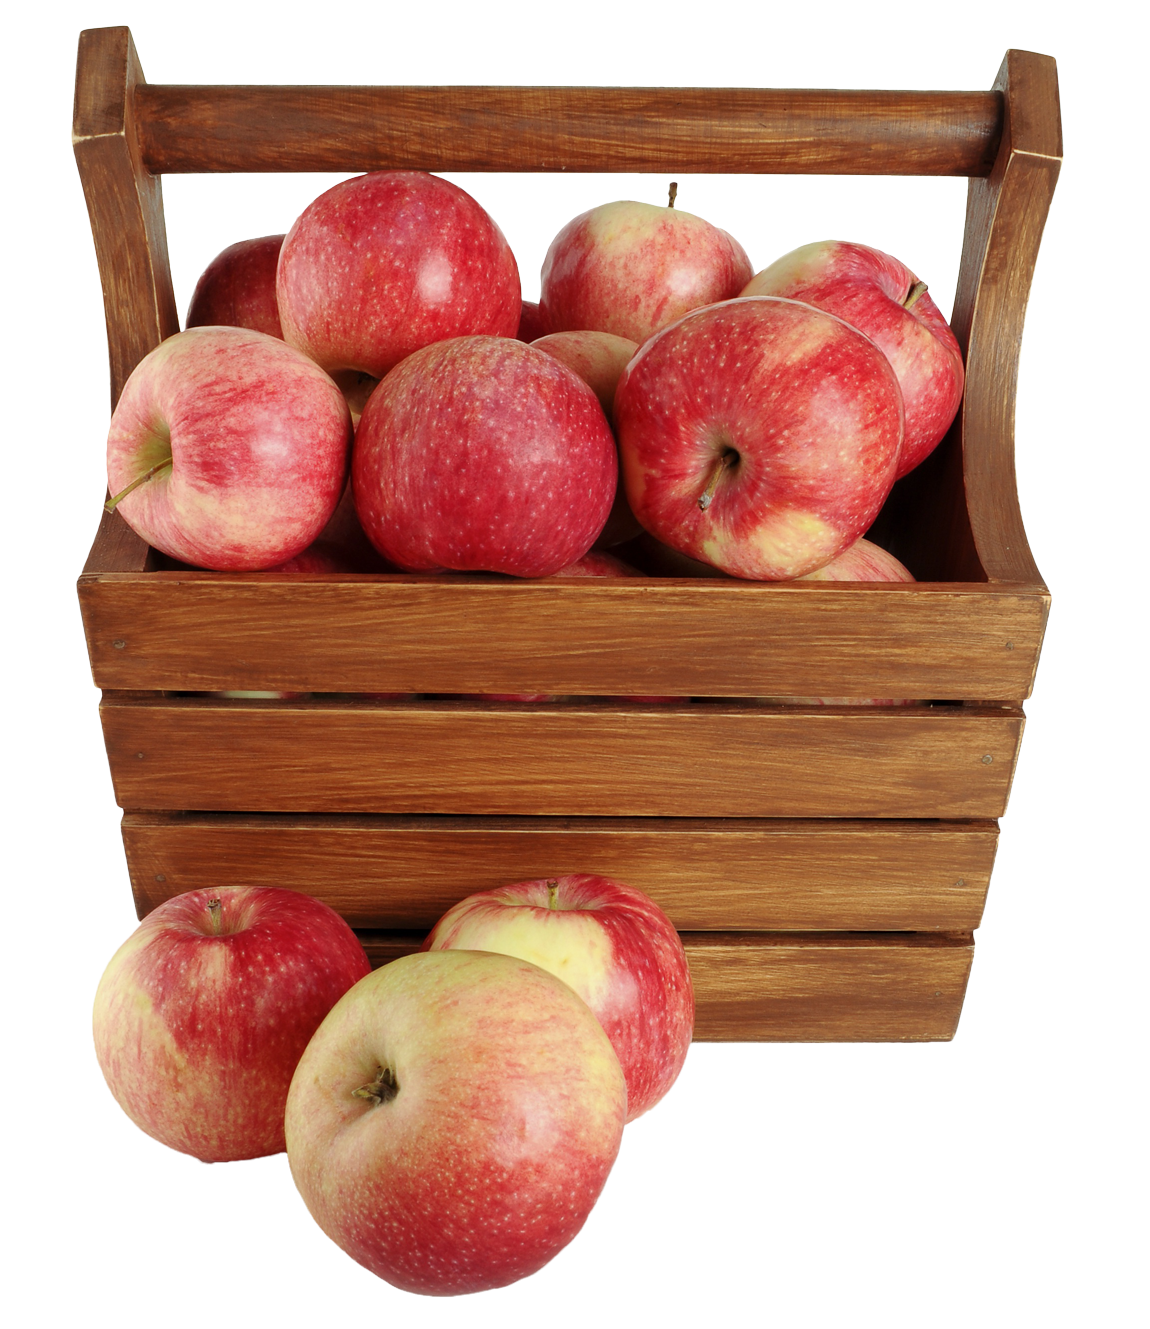 Apple in Basket